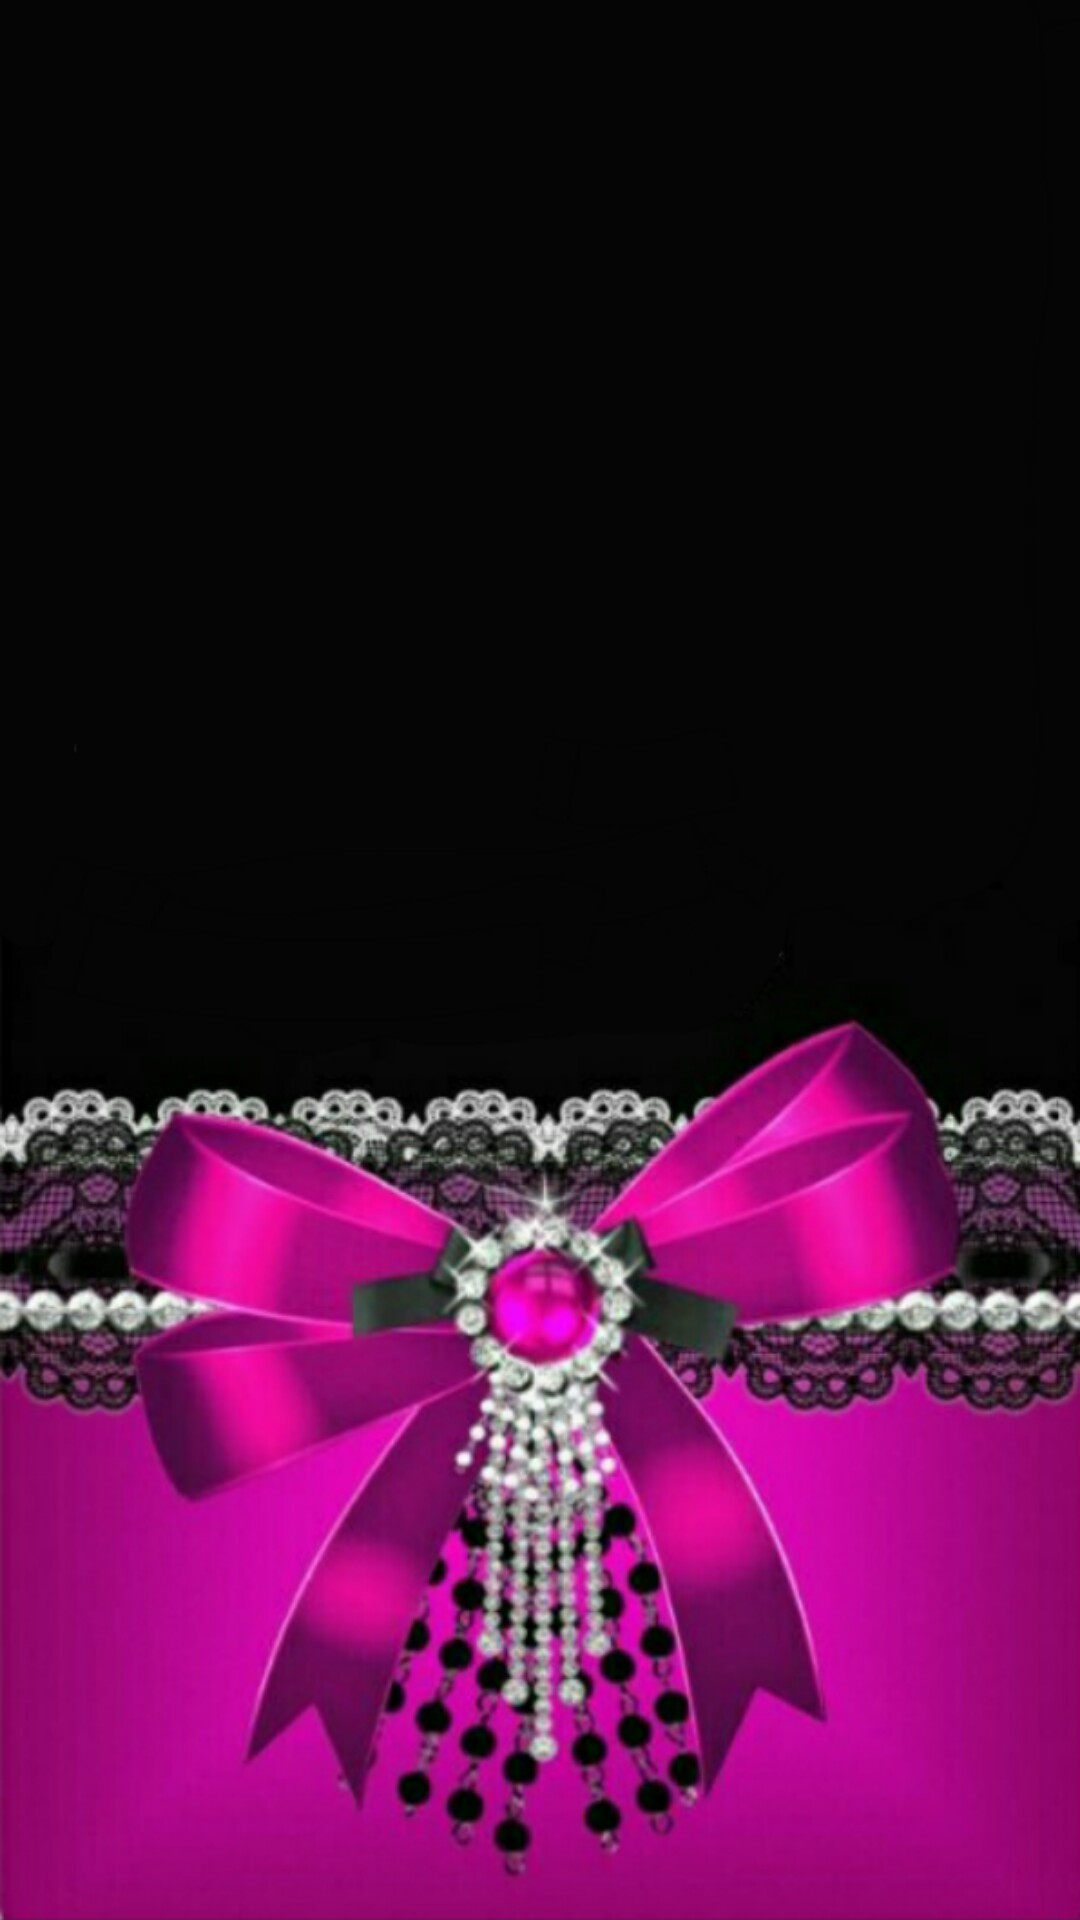 Black with Pink Bow Wallpaper.